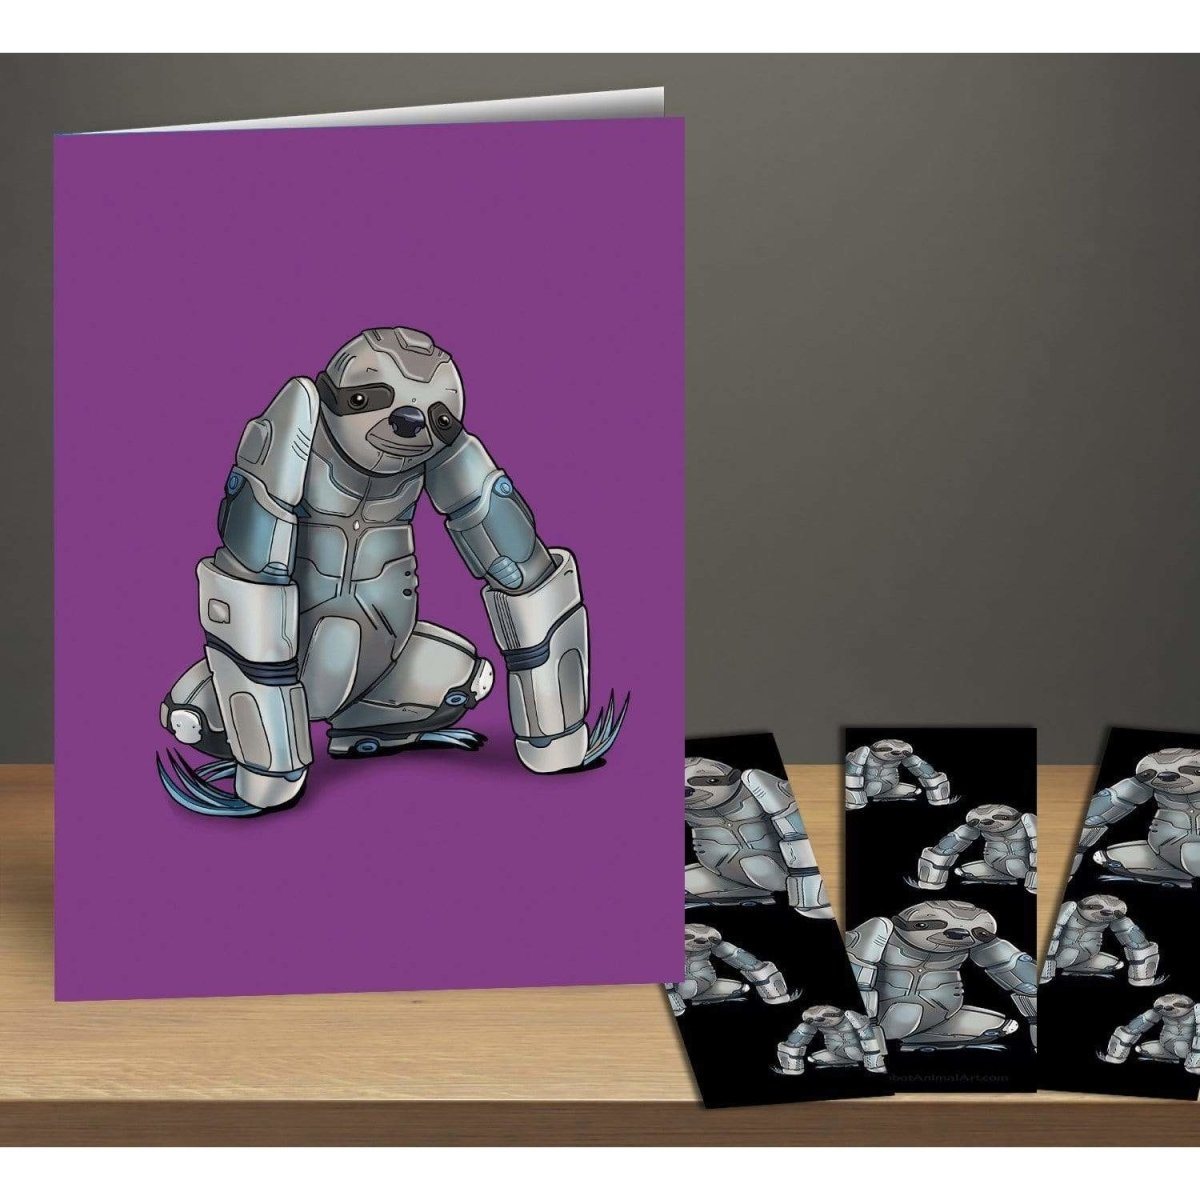 Sloth Robot Greeting Card & Bookmark Combo Pack - Dan Pearce Sticker Shop